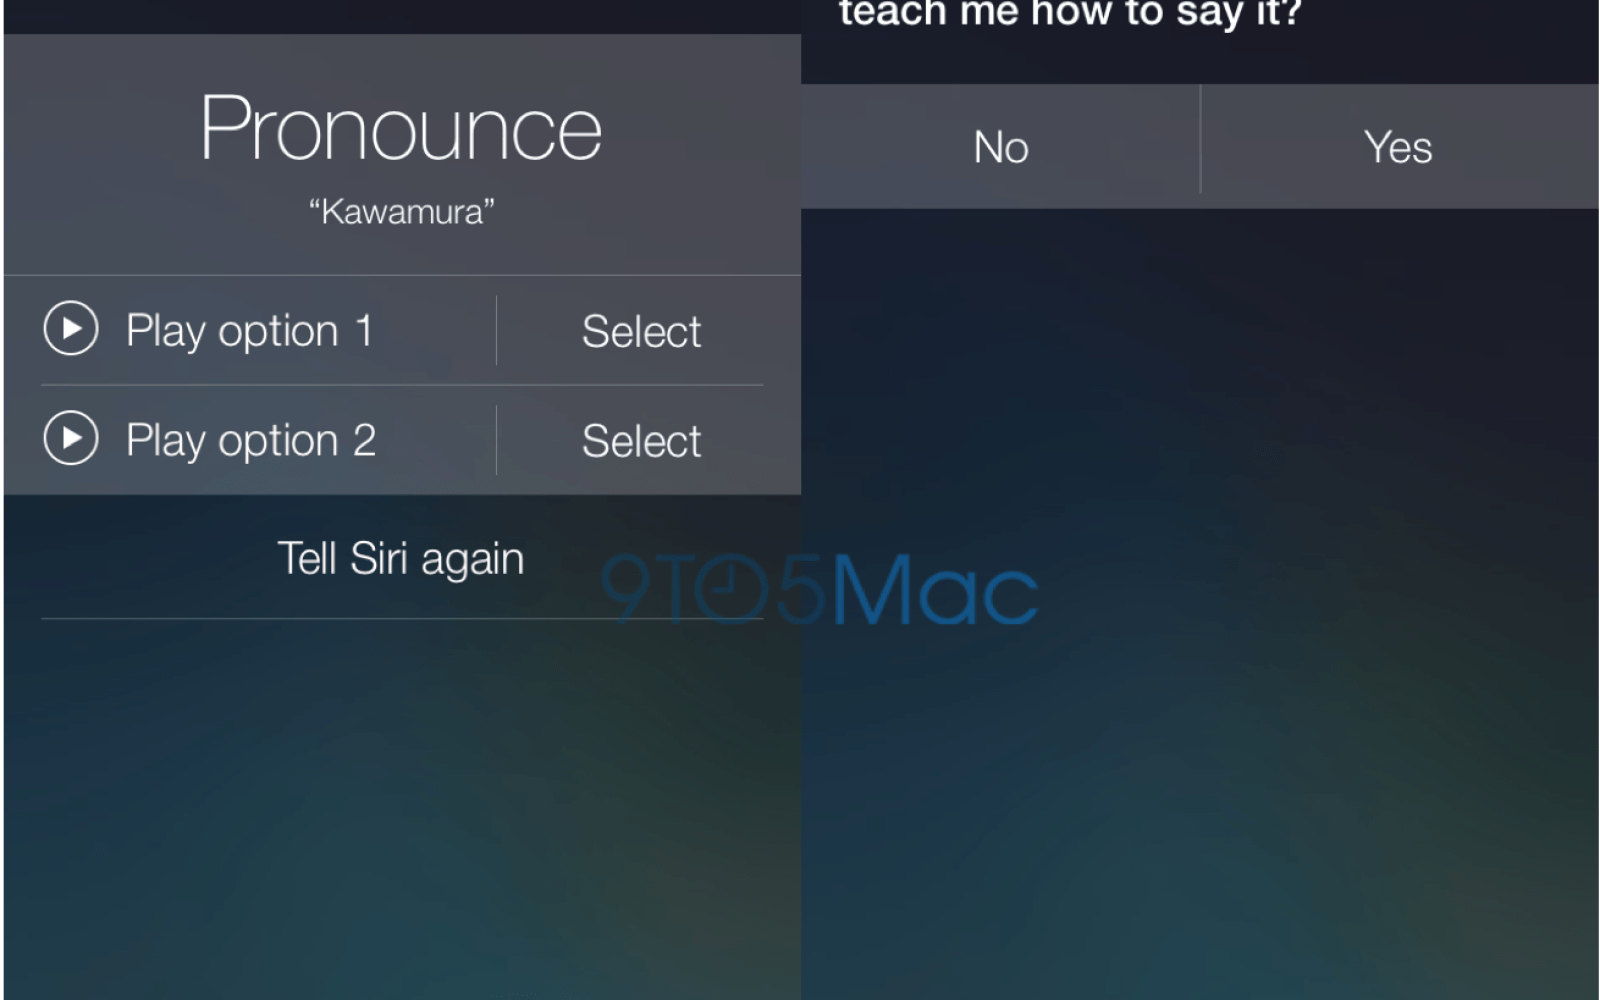 Siri takes initiative to learn how to pronounce names in iOS 7